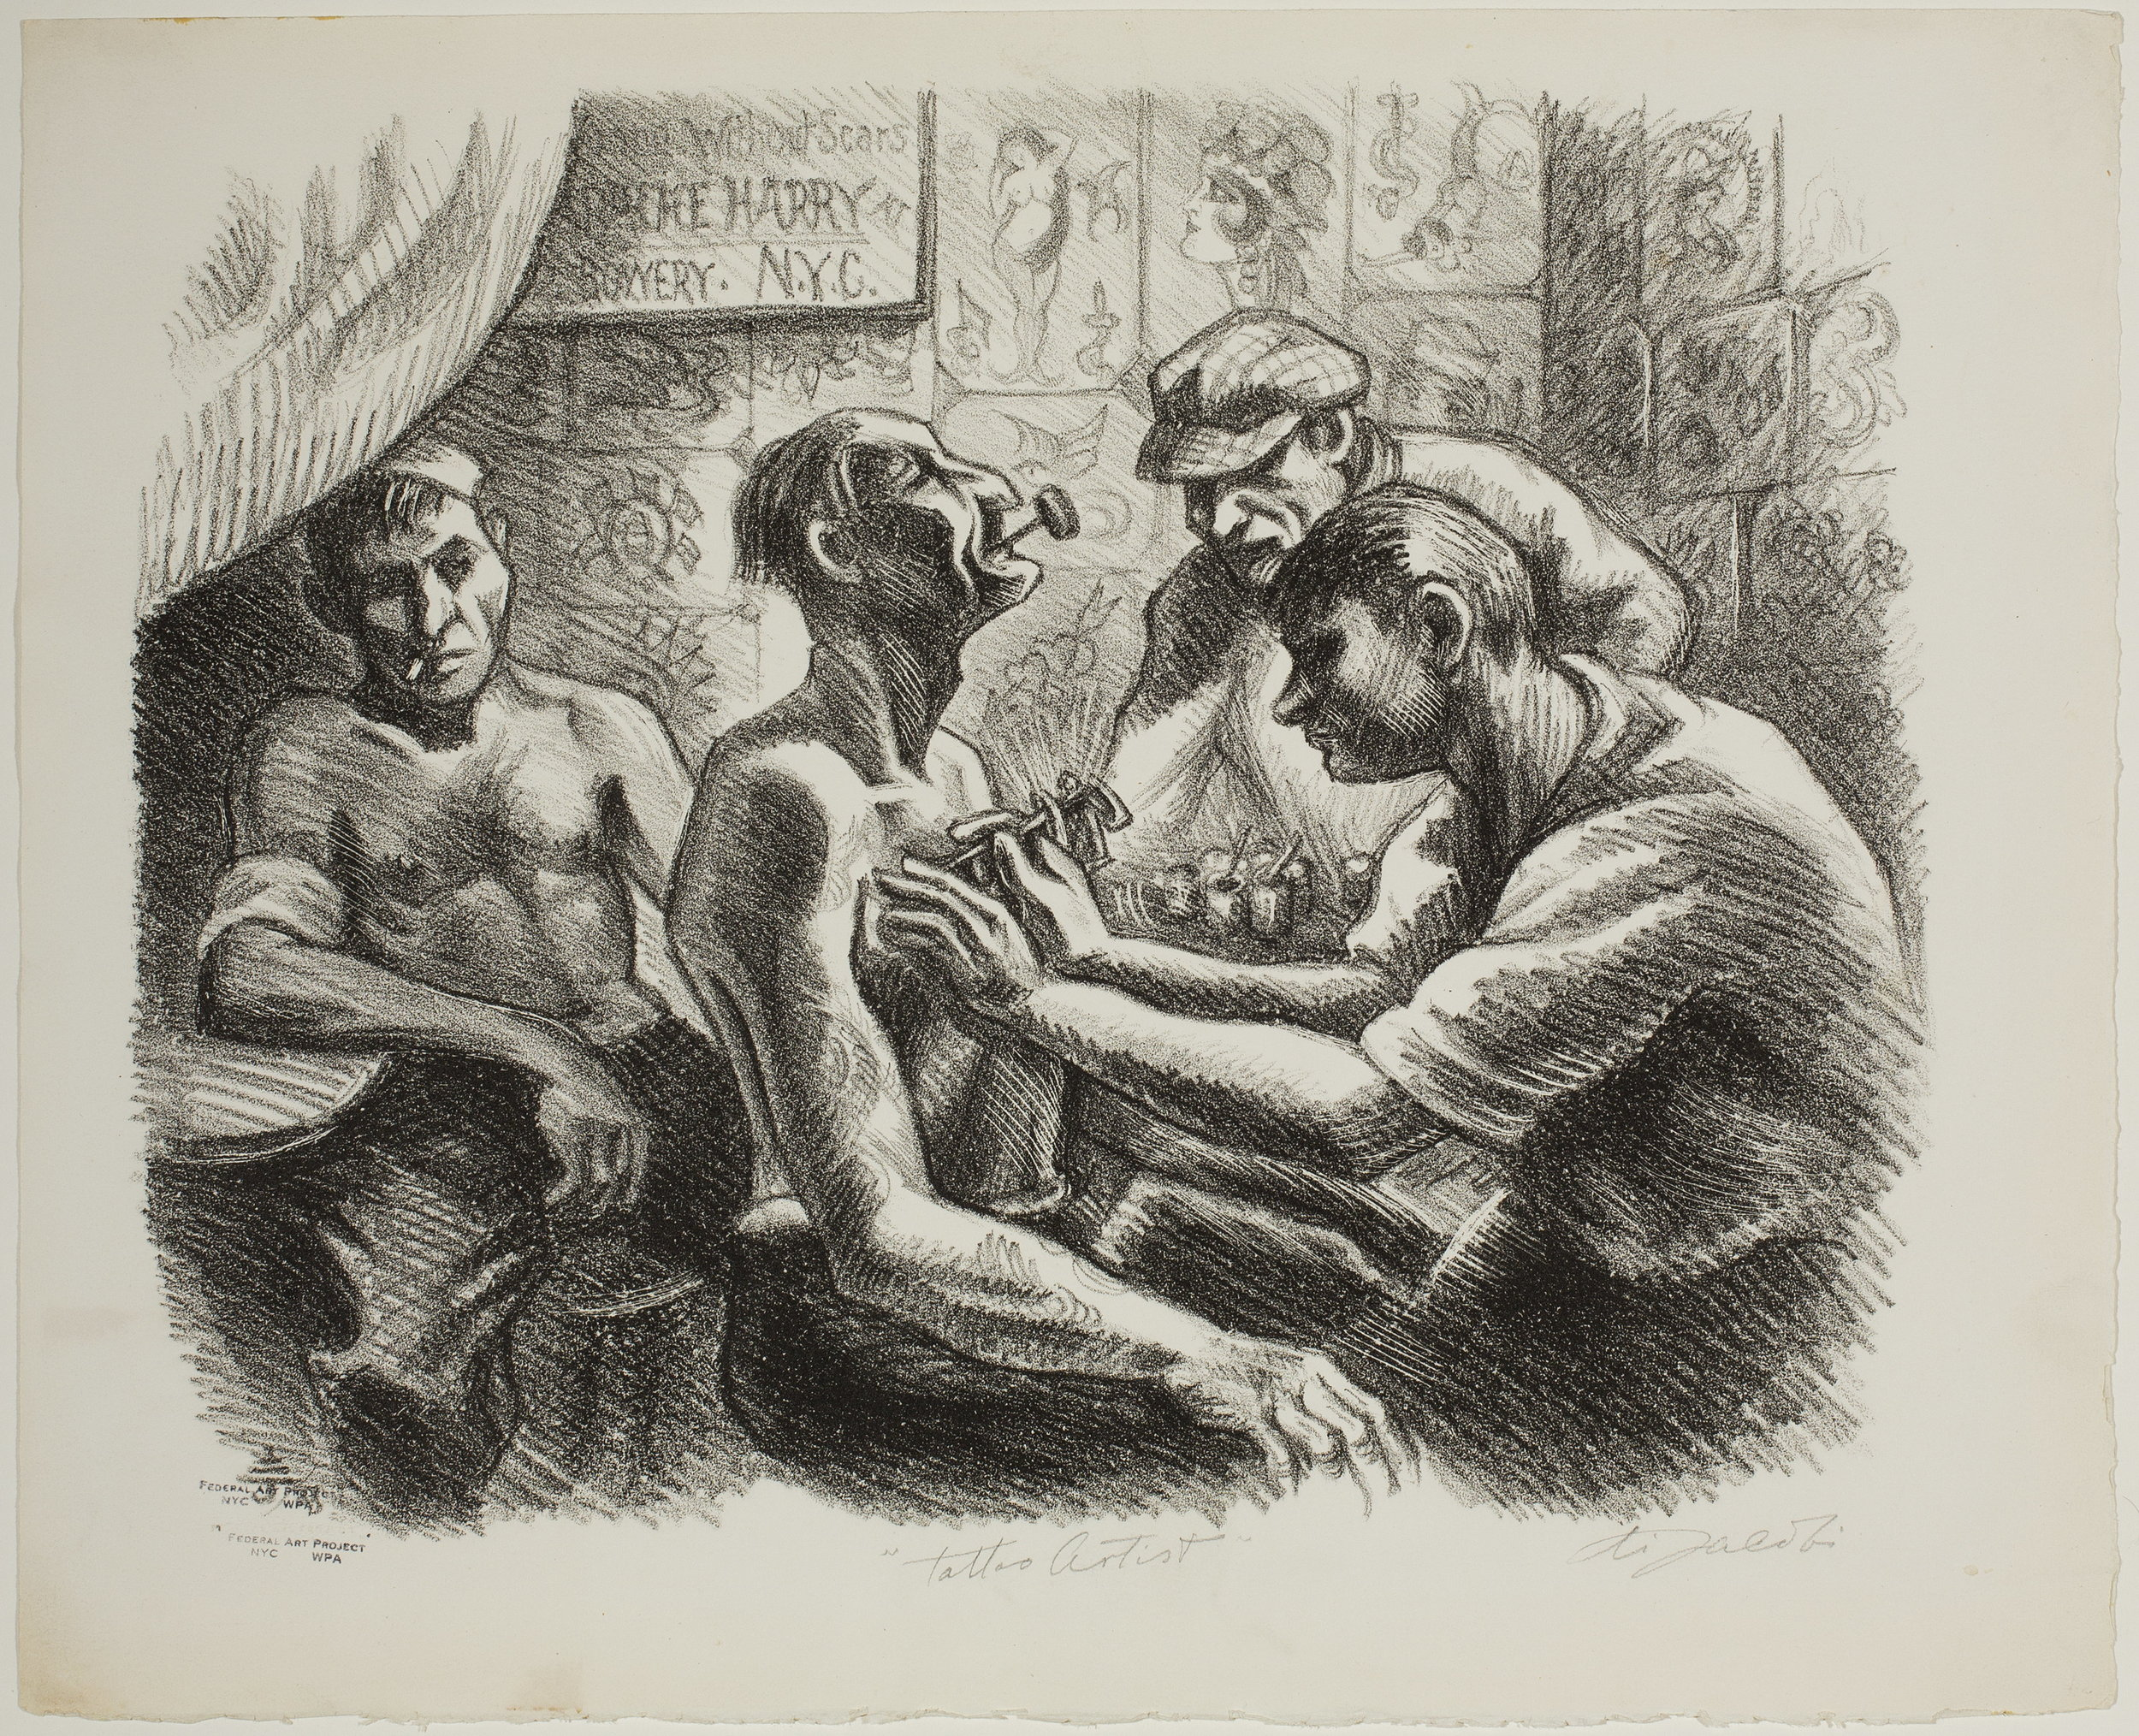 The Tattooist, Woodblock Print, by Eli Jacobi, NY, ca. 1935